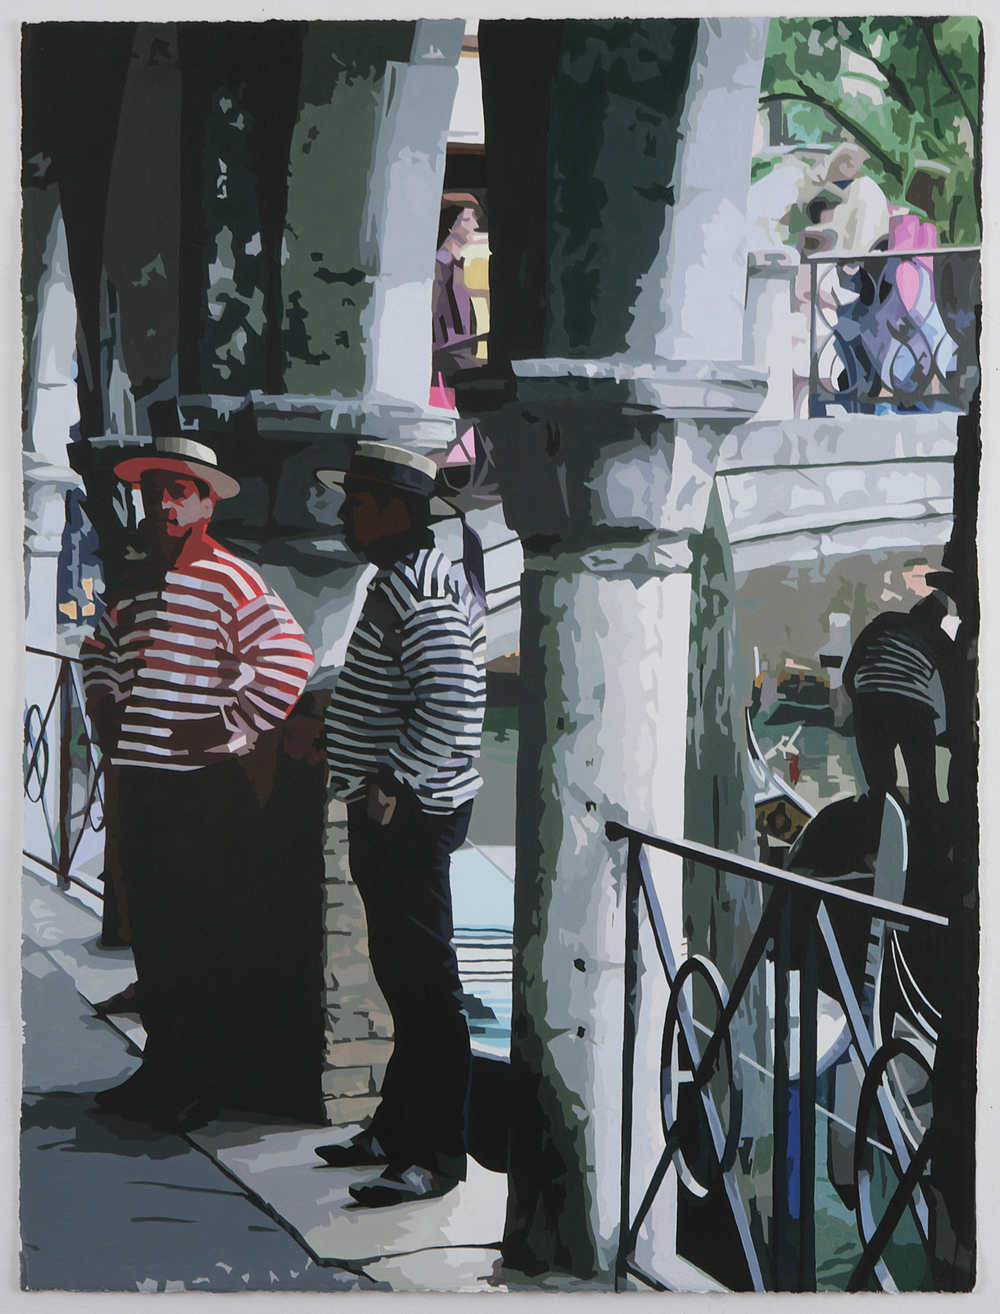 Tourist scenes: Gondoliers , 2007, Acrylic on gessoed paper, 30 x 22-3/4 inches